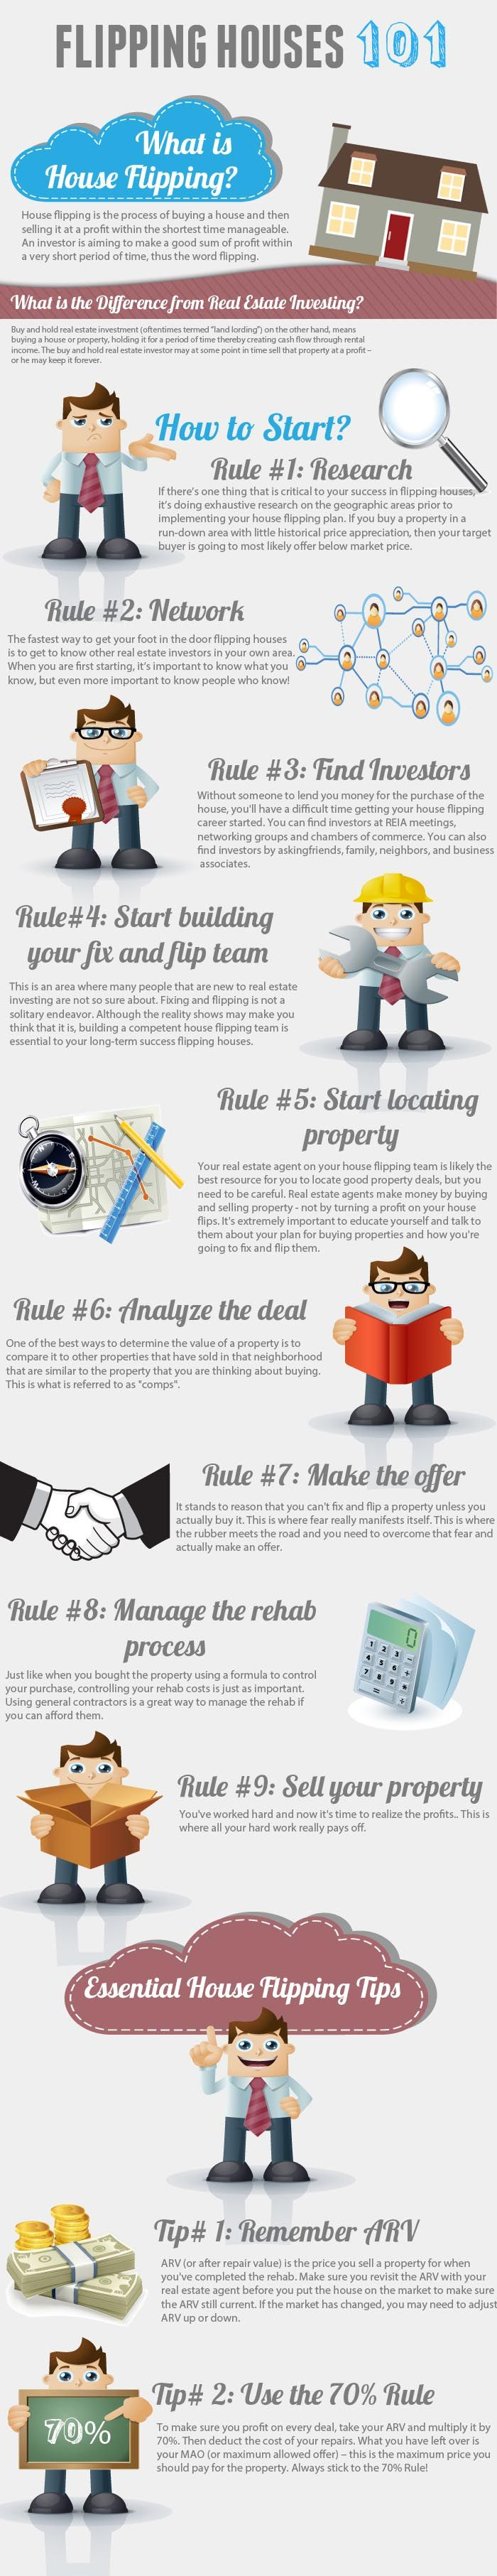 REAL ESTATE -         House flipping 101 infographic.